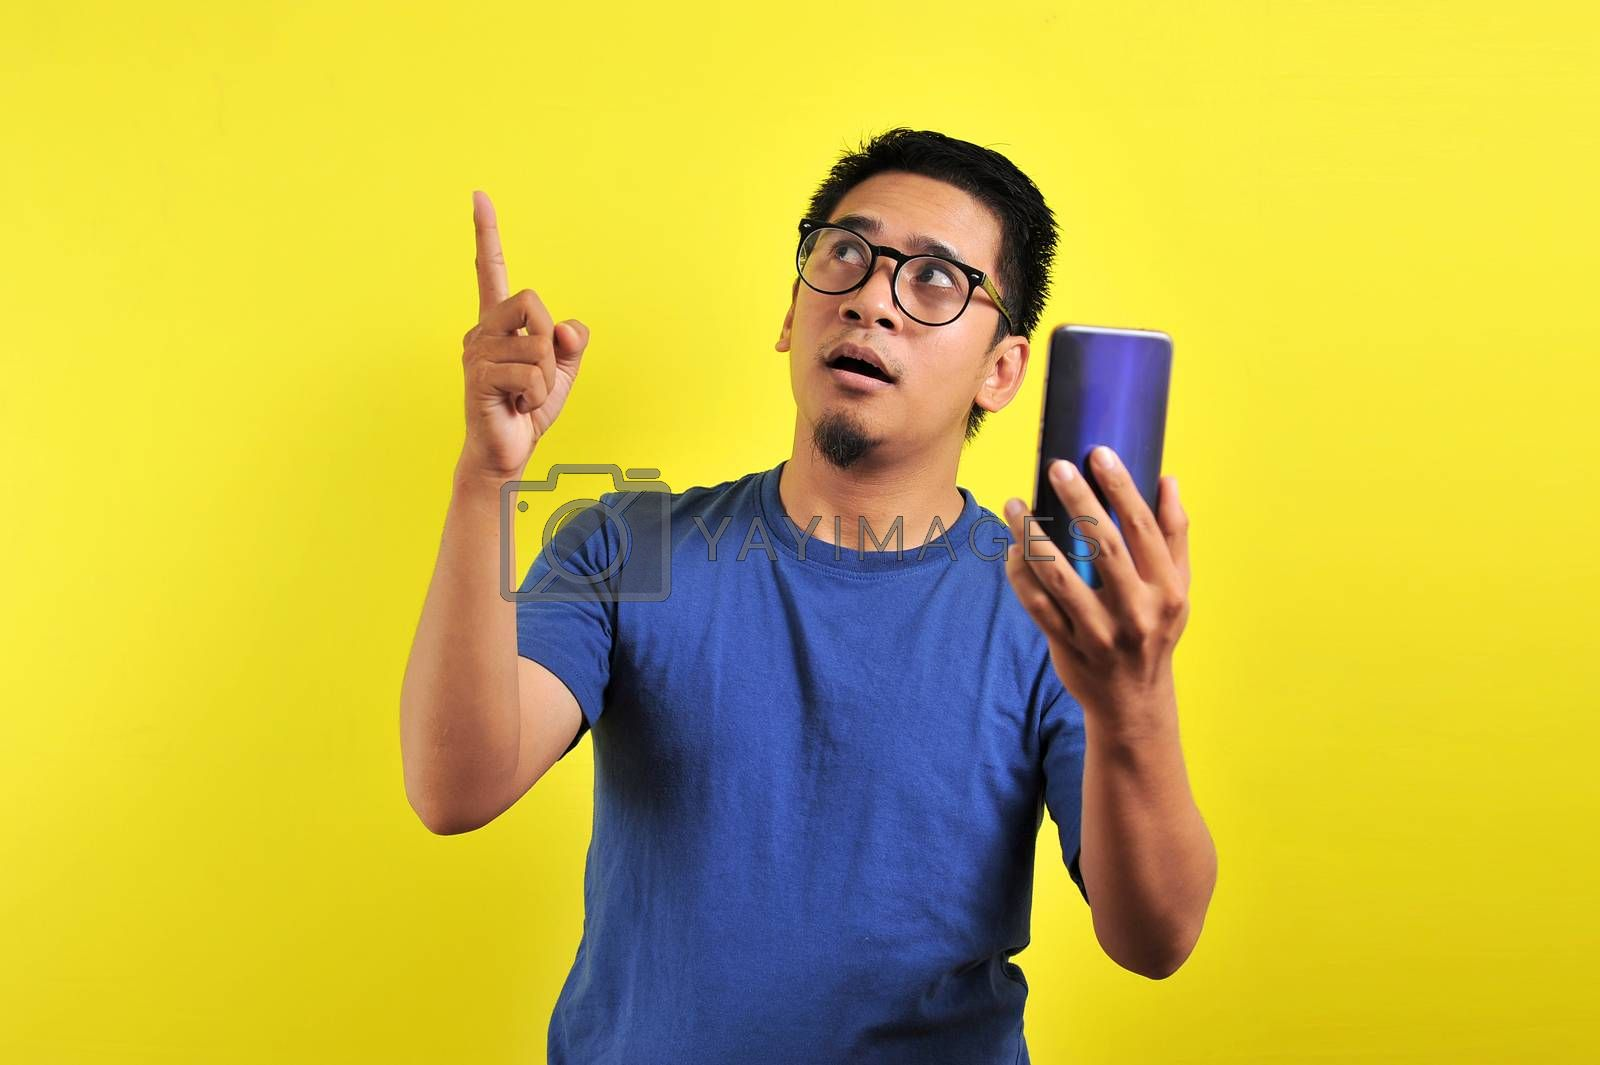 Happy young Asian man smiling using smartphone looking at blank area, isolated on yellow background